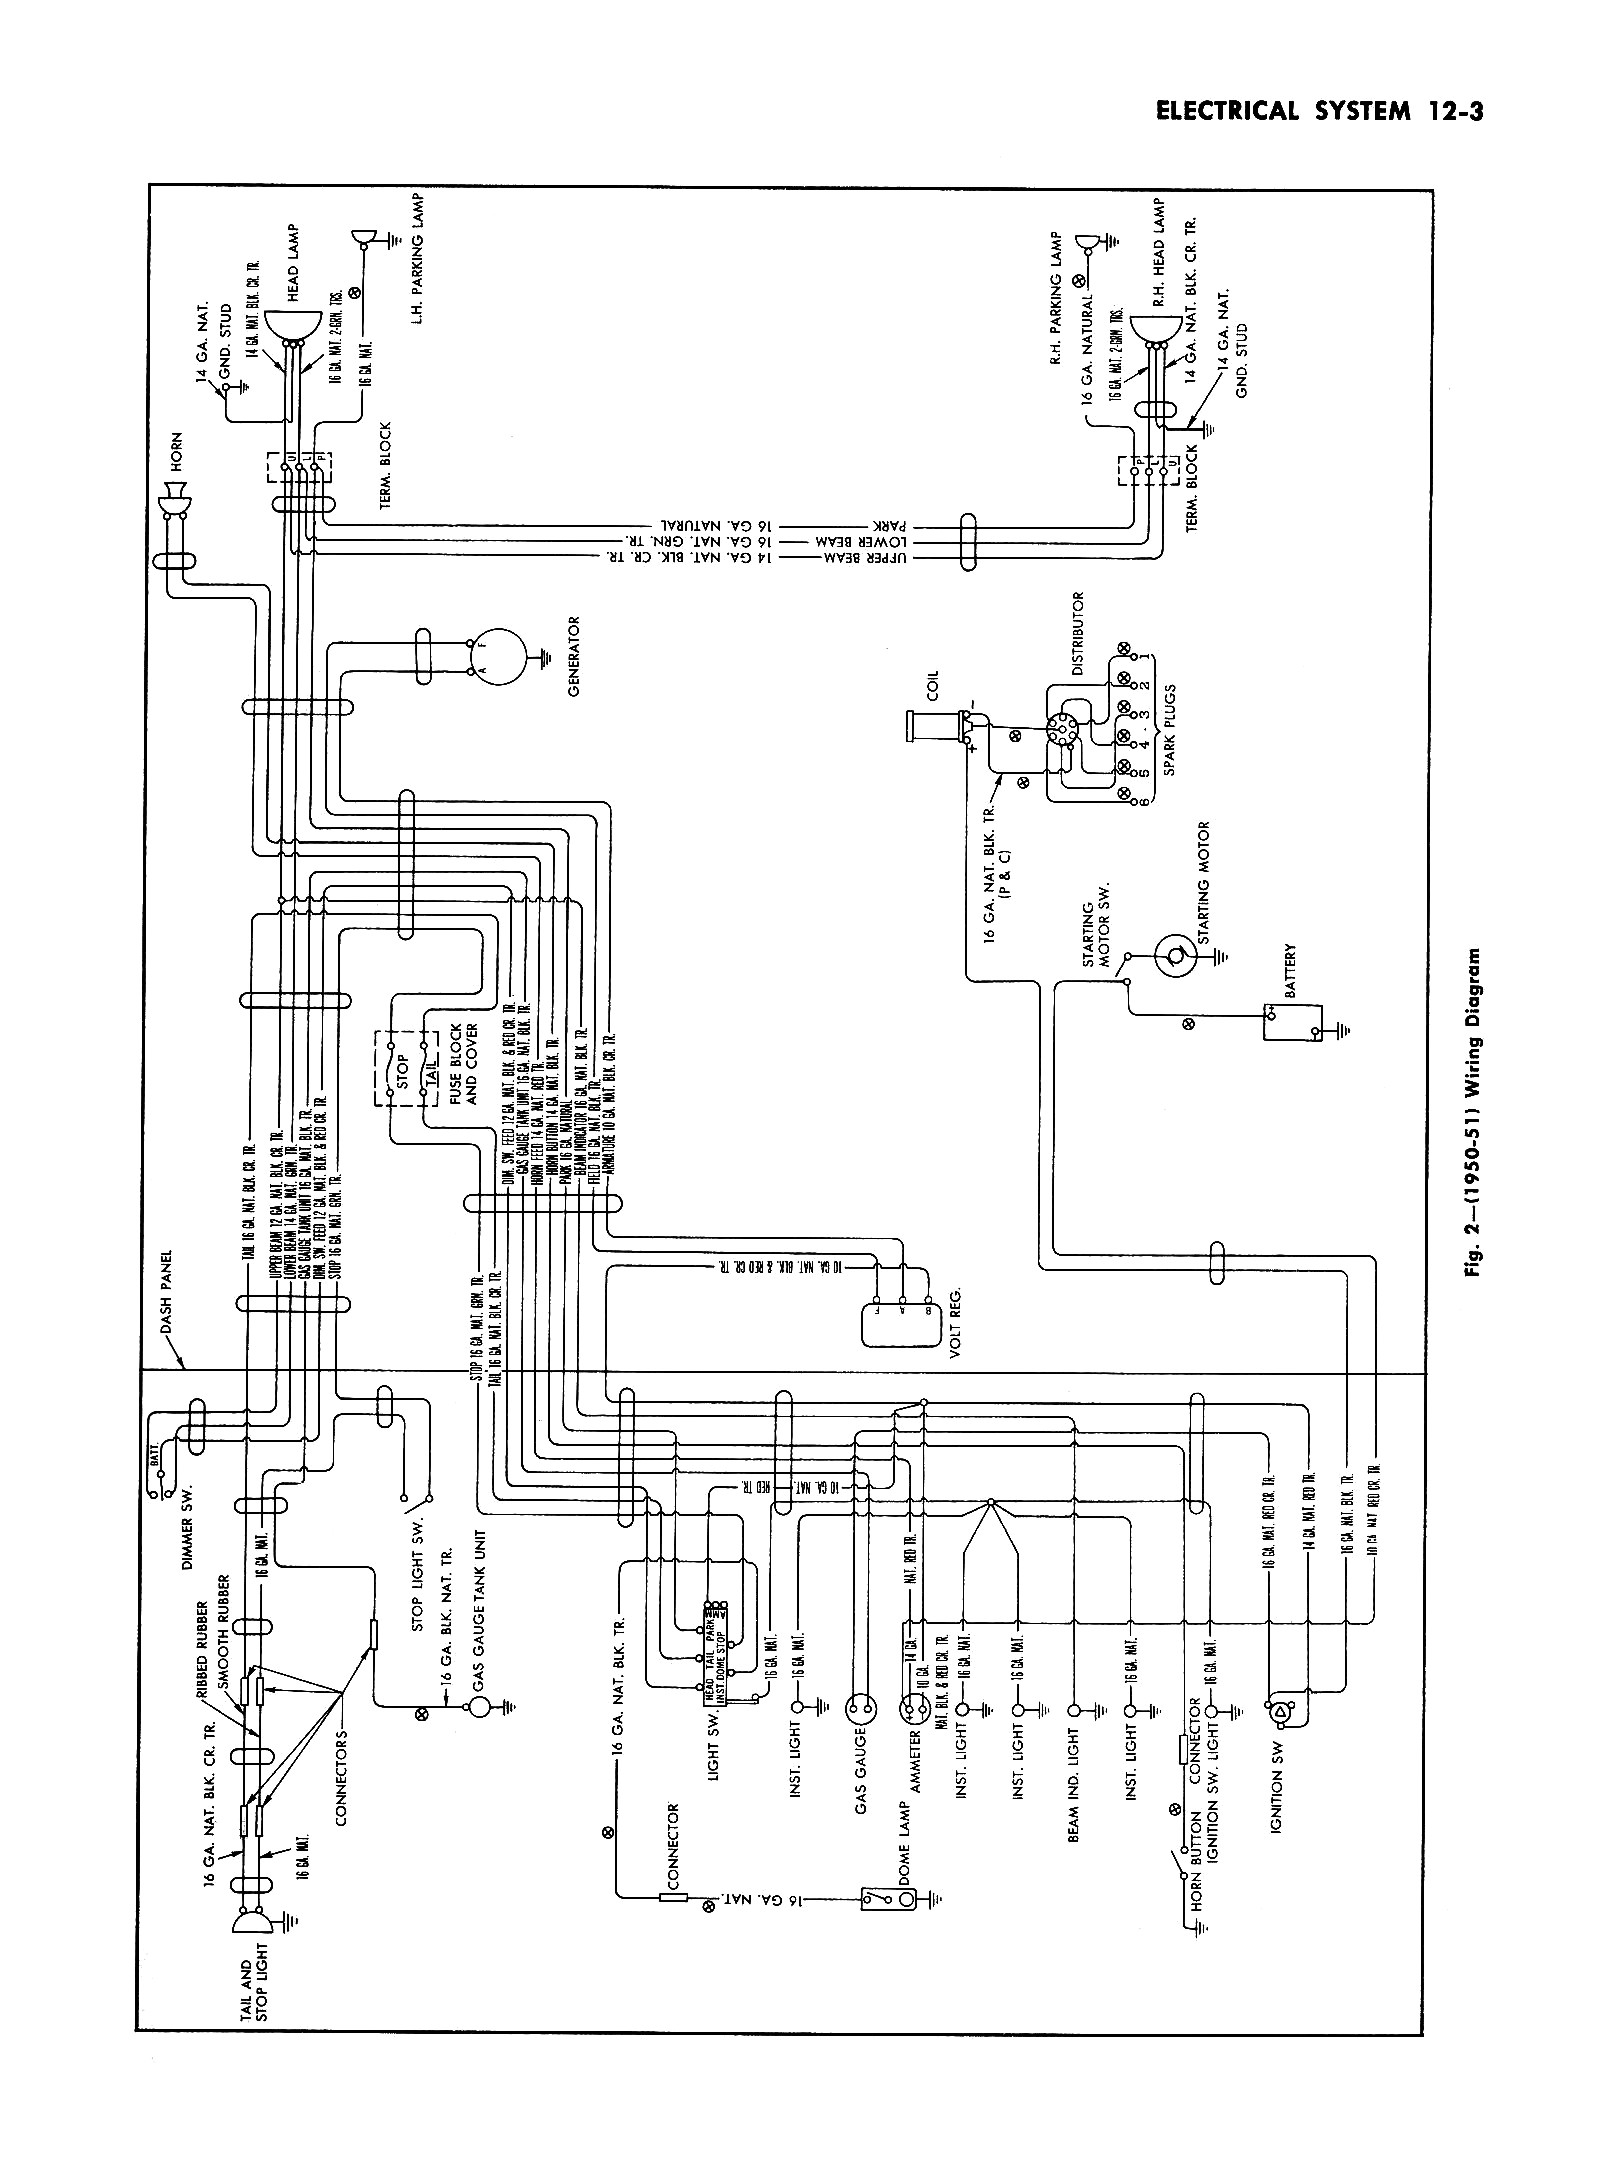 1951 Olds Wiring Diagram - Wiring Diagrams Schematic Free Car Wiring Diagram Oldsmobile on free auto wiring schematic, free car repair manuals, free vehicle diagrams, free chilton diagrams, free car parts, electrical diagrams, free diagram templates, free schematic diagram, free auto diagrams, free home, free honda wiring diagram, free car schematics, free electronic schematics, free engine rebuilding diagrams, free car seats, free car diagnostic, free car tools, free car maintenance, free car engine diagrams, free toyota repair diagrams,